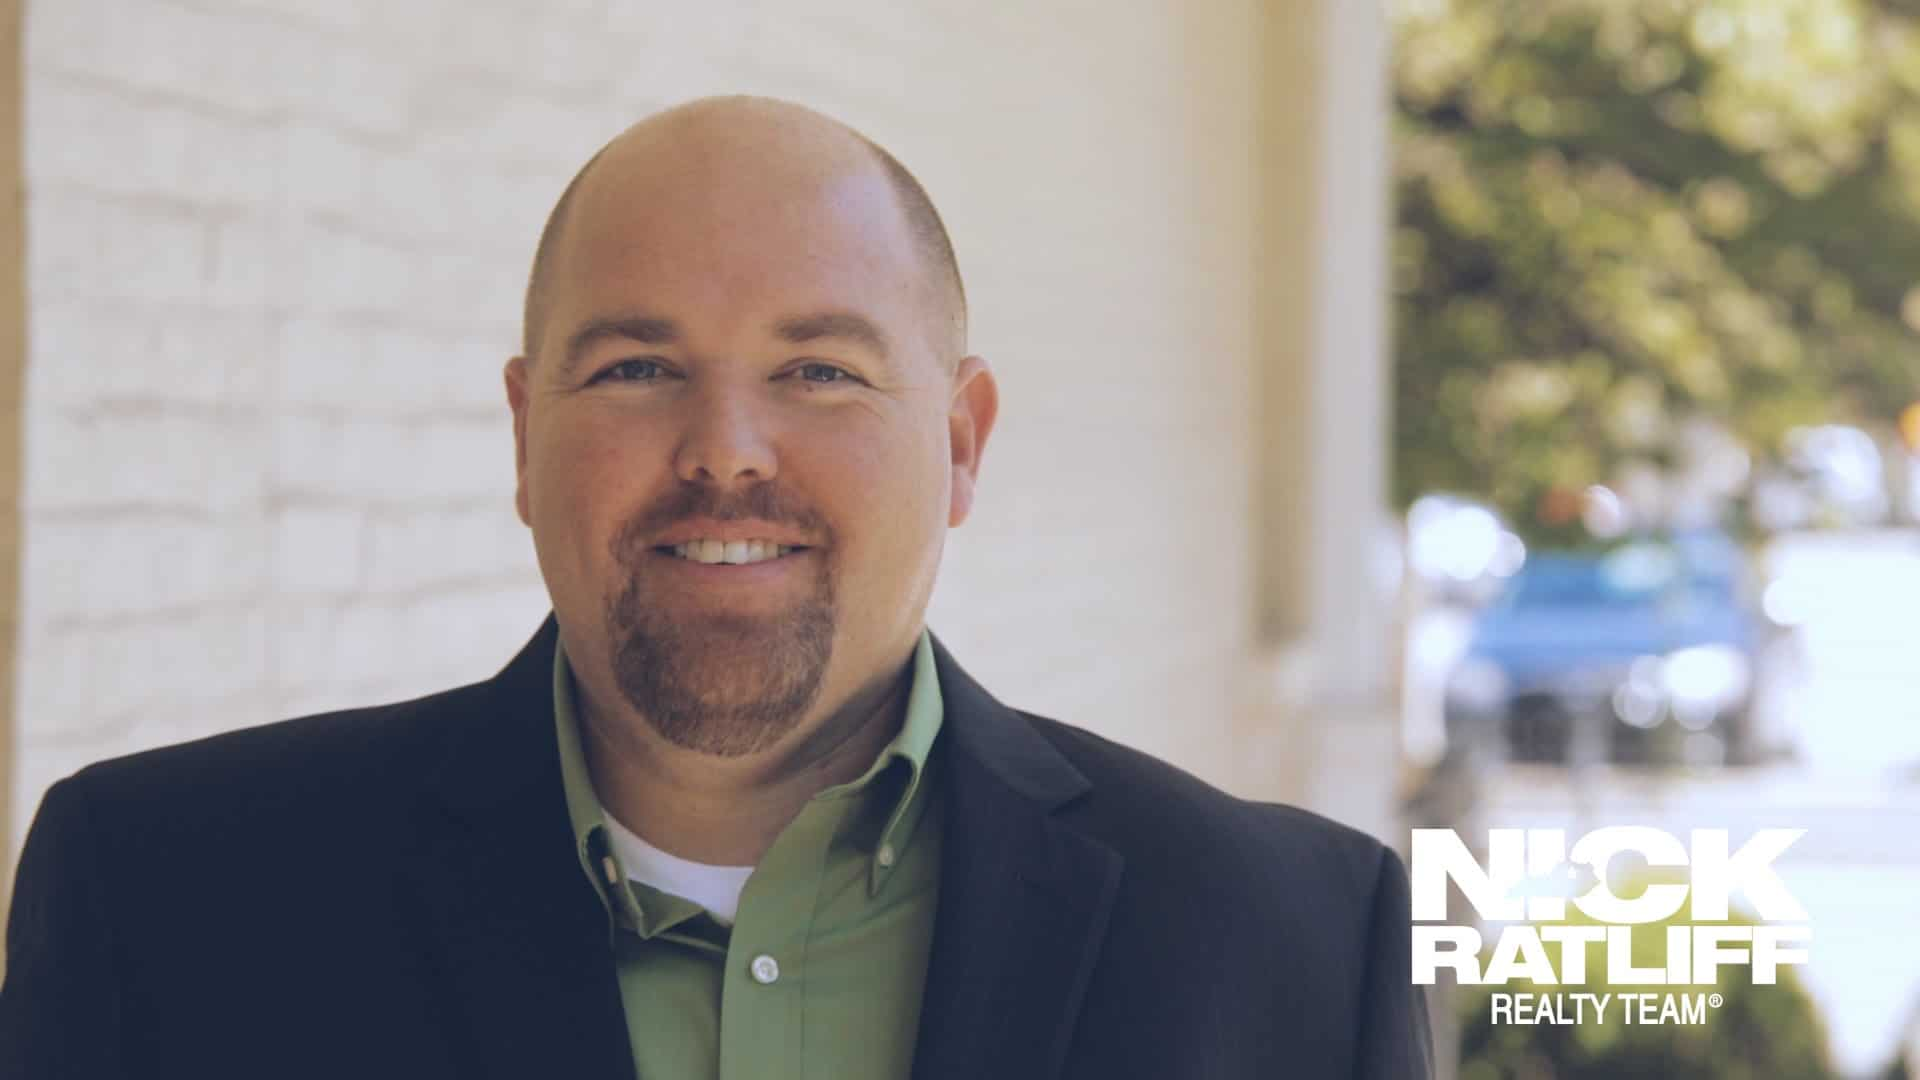 Video for Nick Ratliff Realty Team